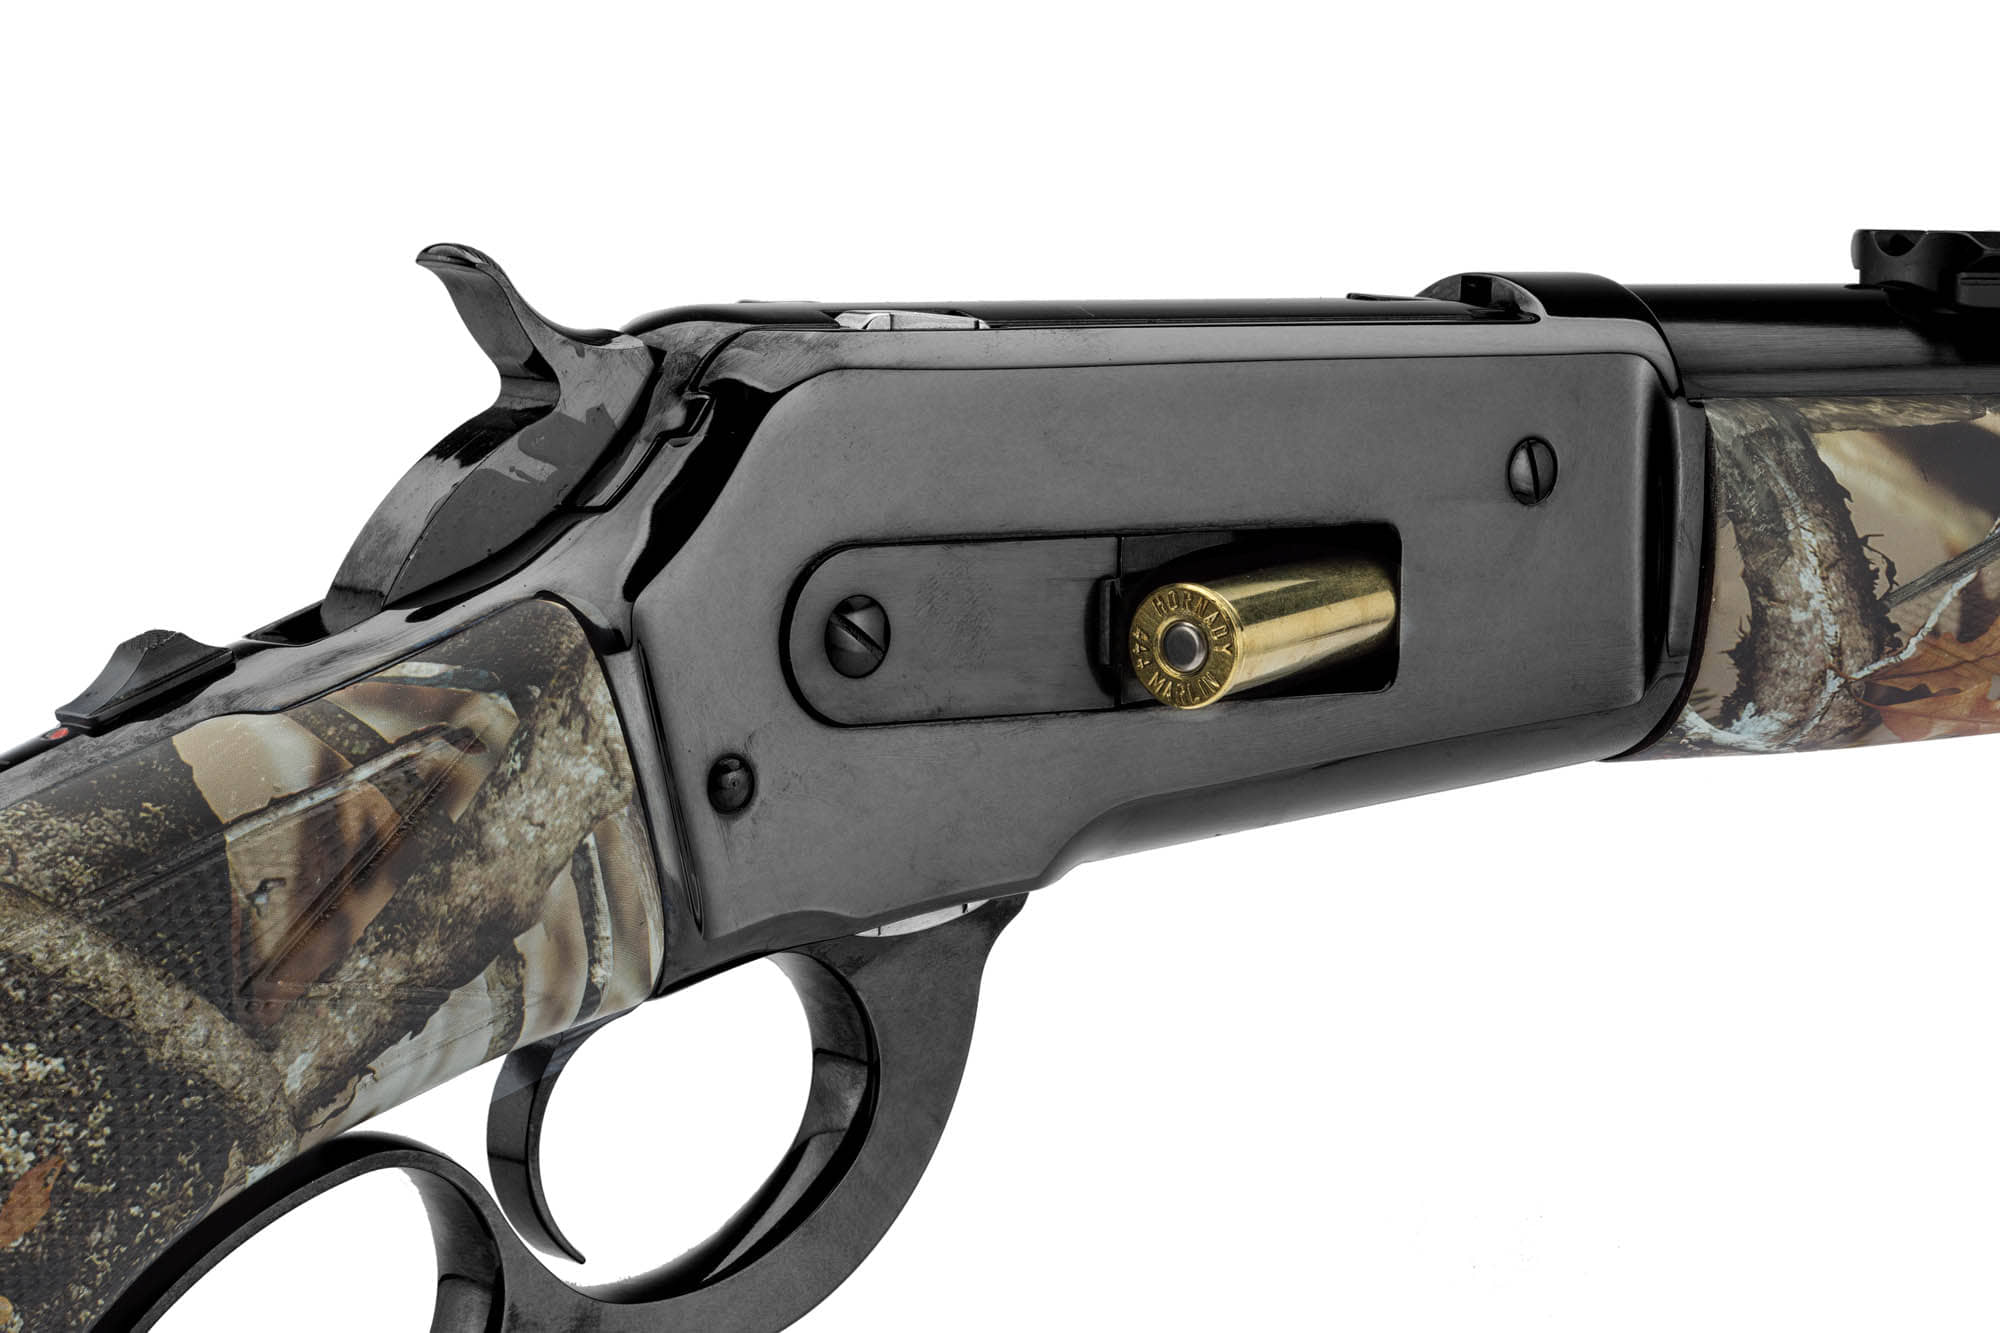 DPSM741-6-Carabine Pedersoli lever action mod. 86/71 cal . 444 Marlin - camo forest - DPSM741